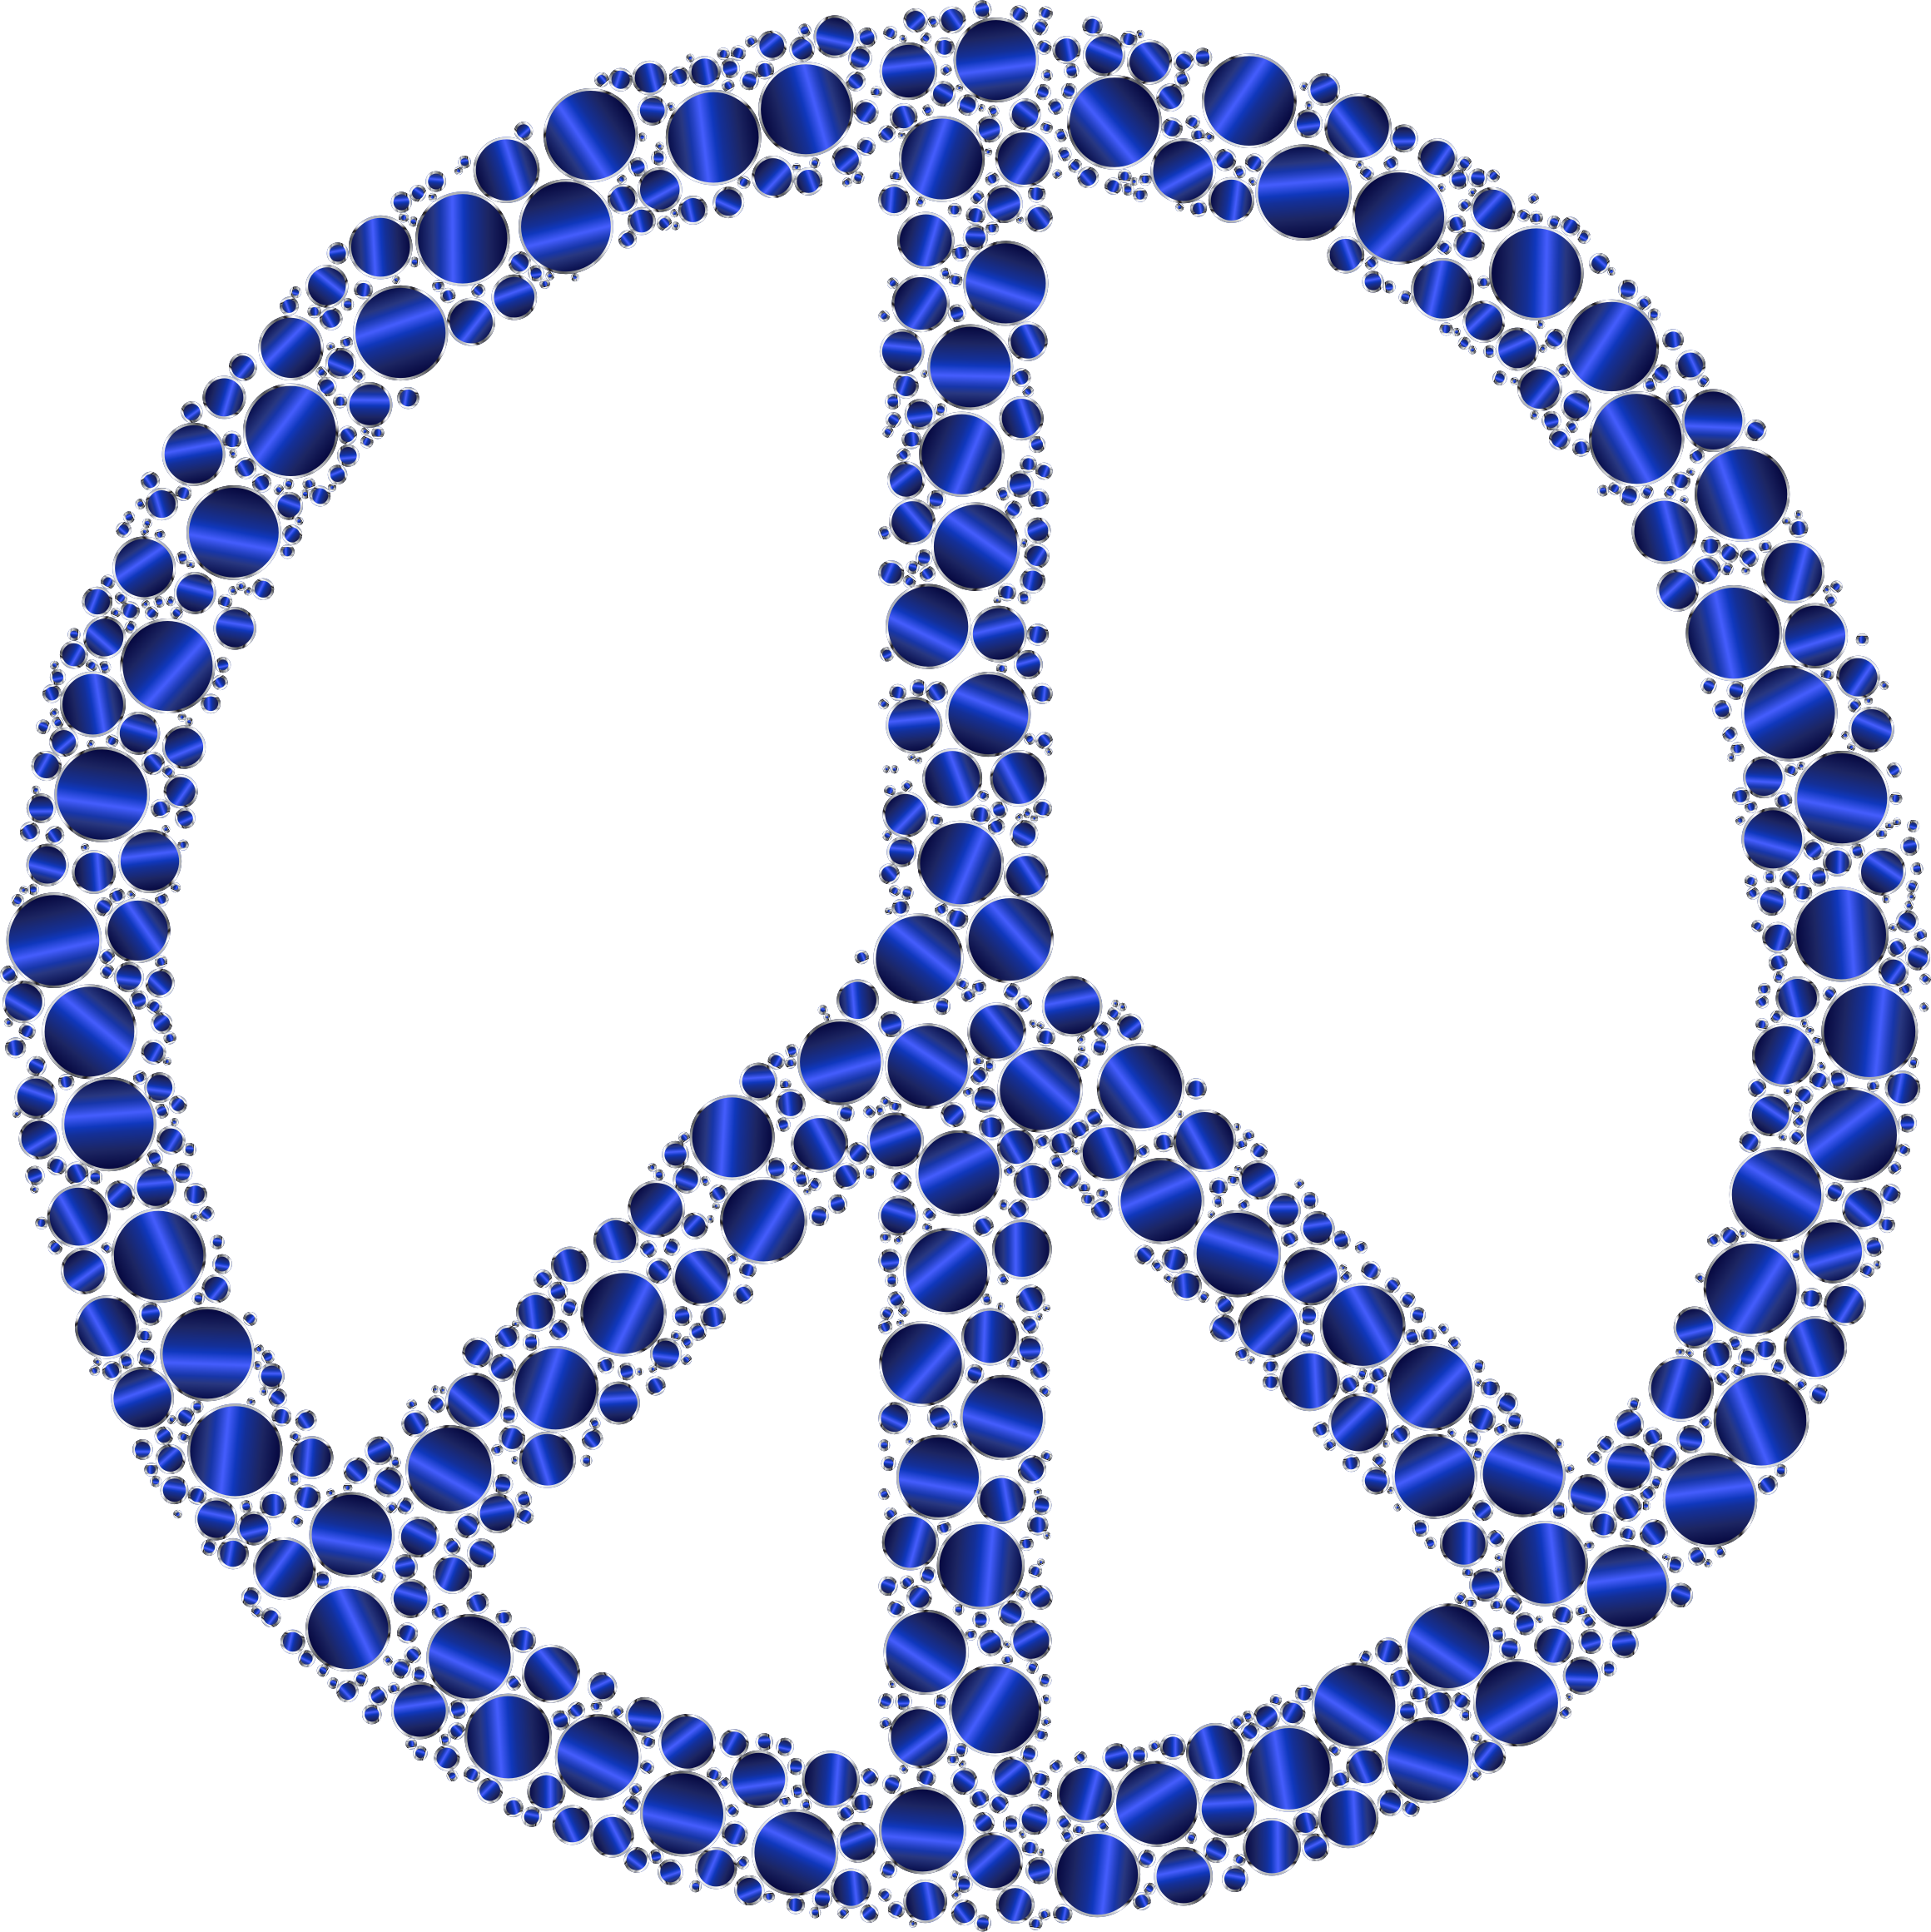 Colorful Circles Peace Sign 21 Without Background by GDJ